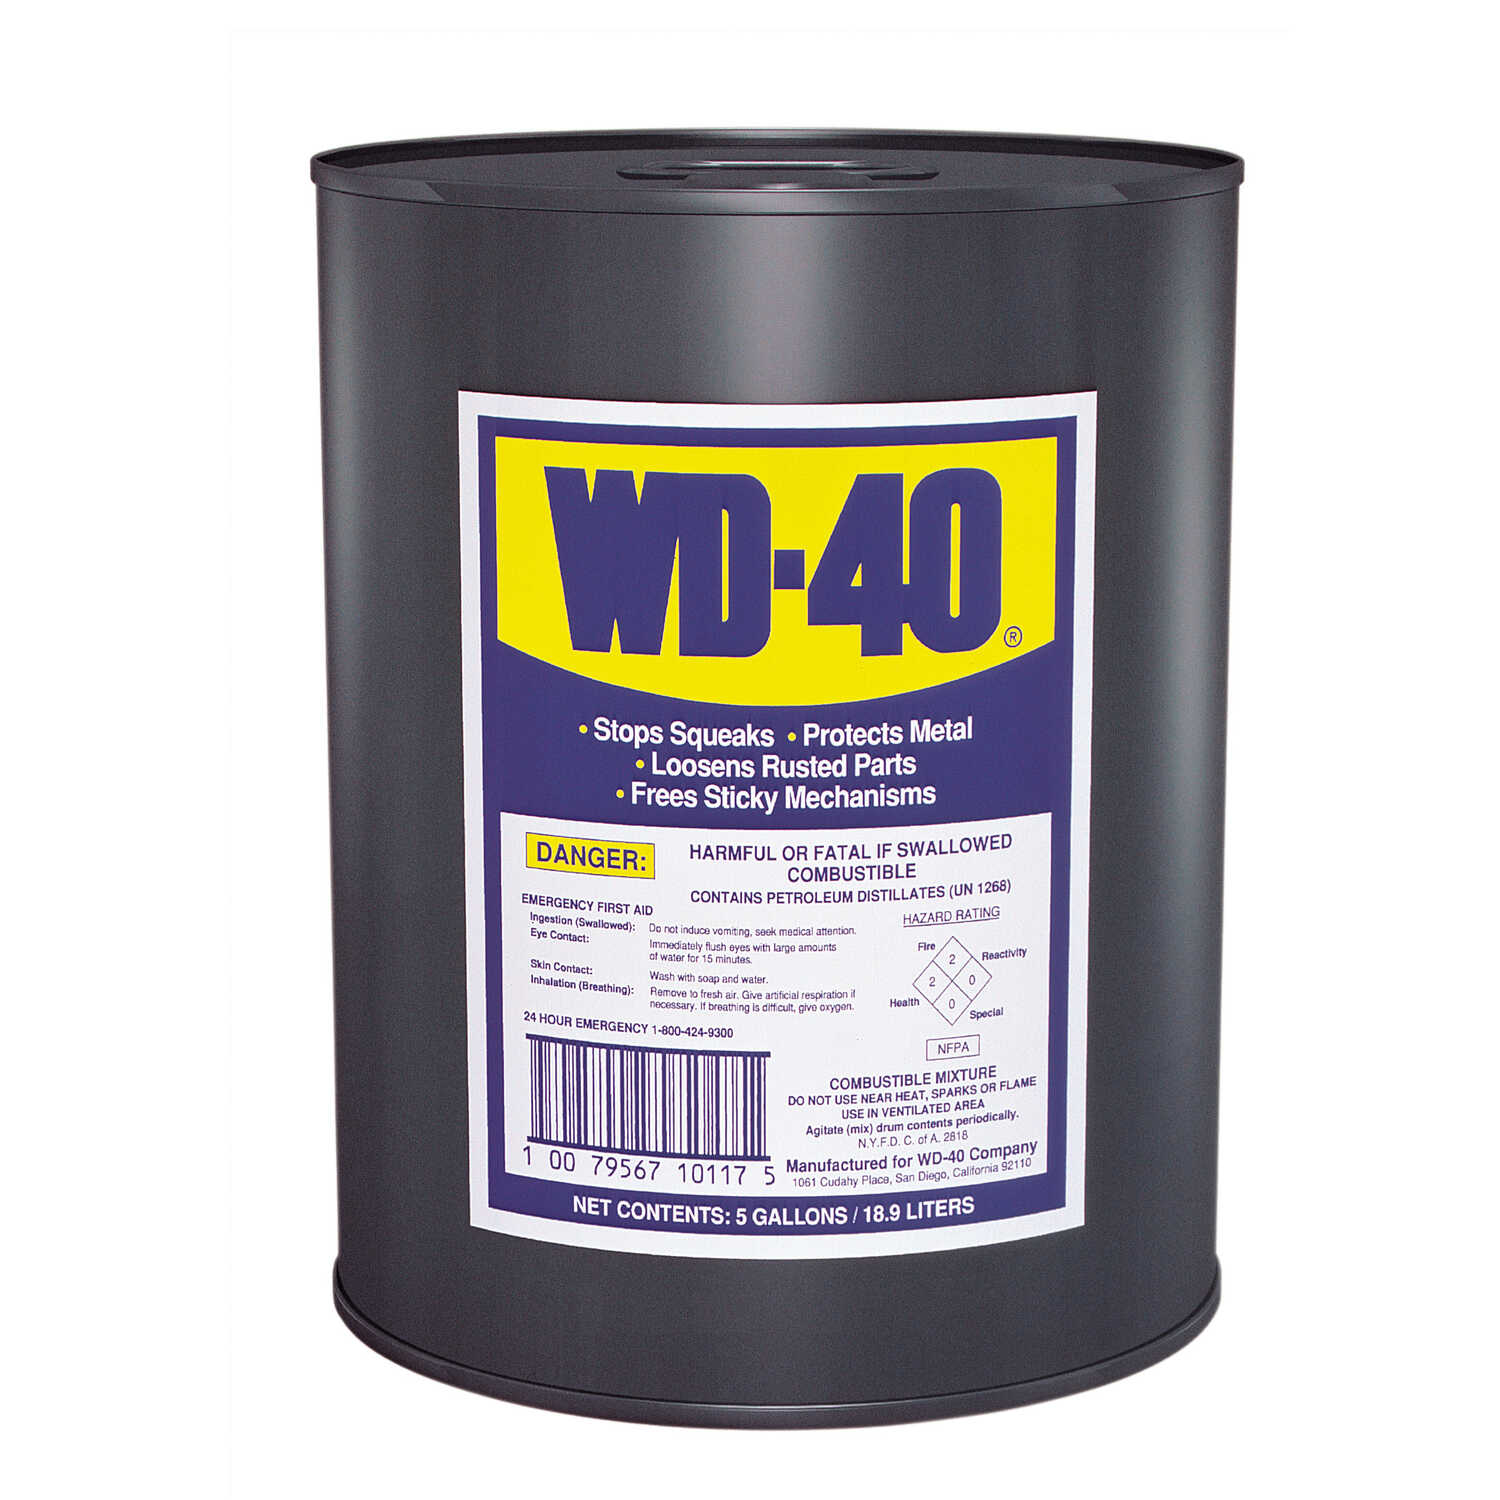 WD-40  General Purpose  5 gal. Lubricant  Drum